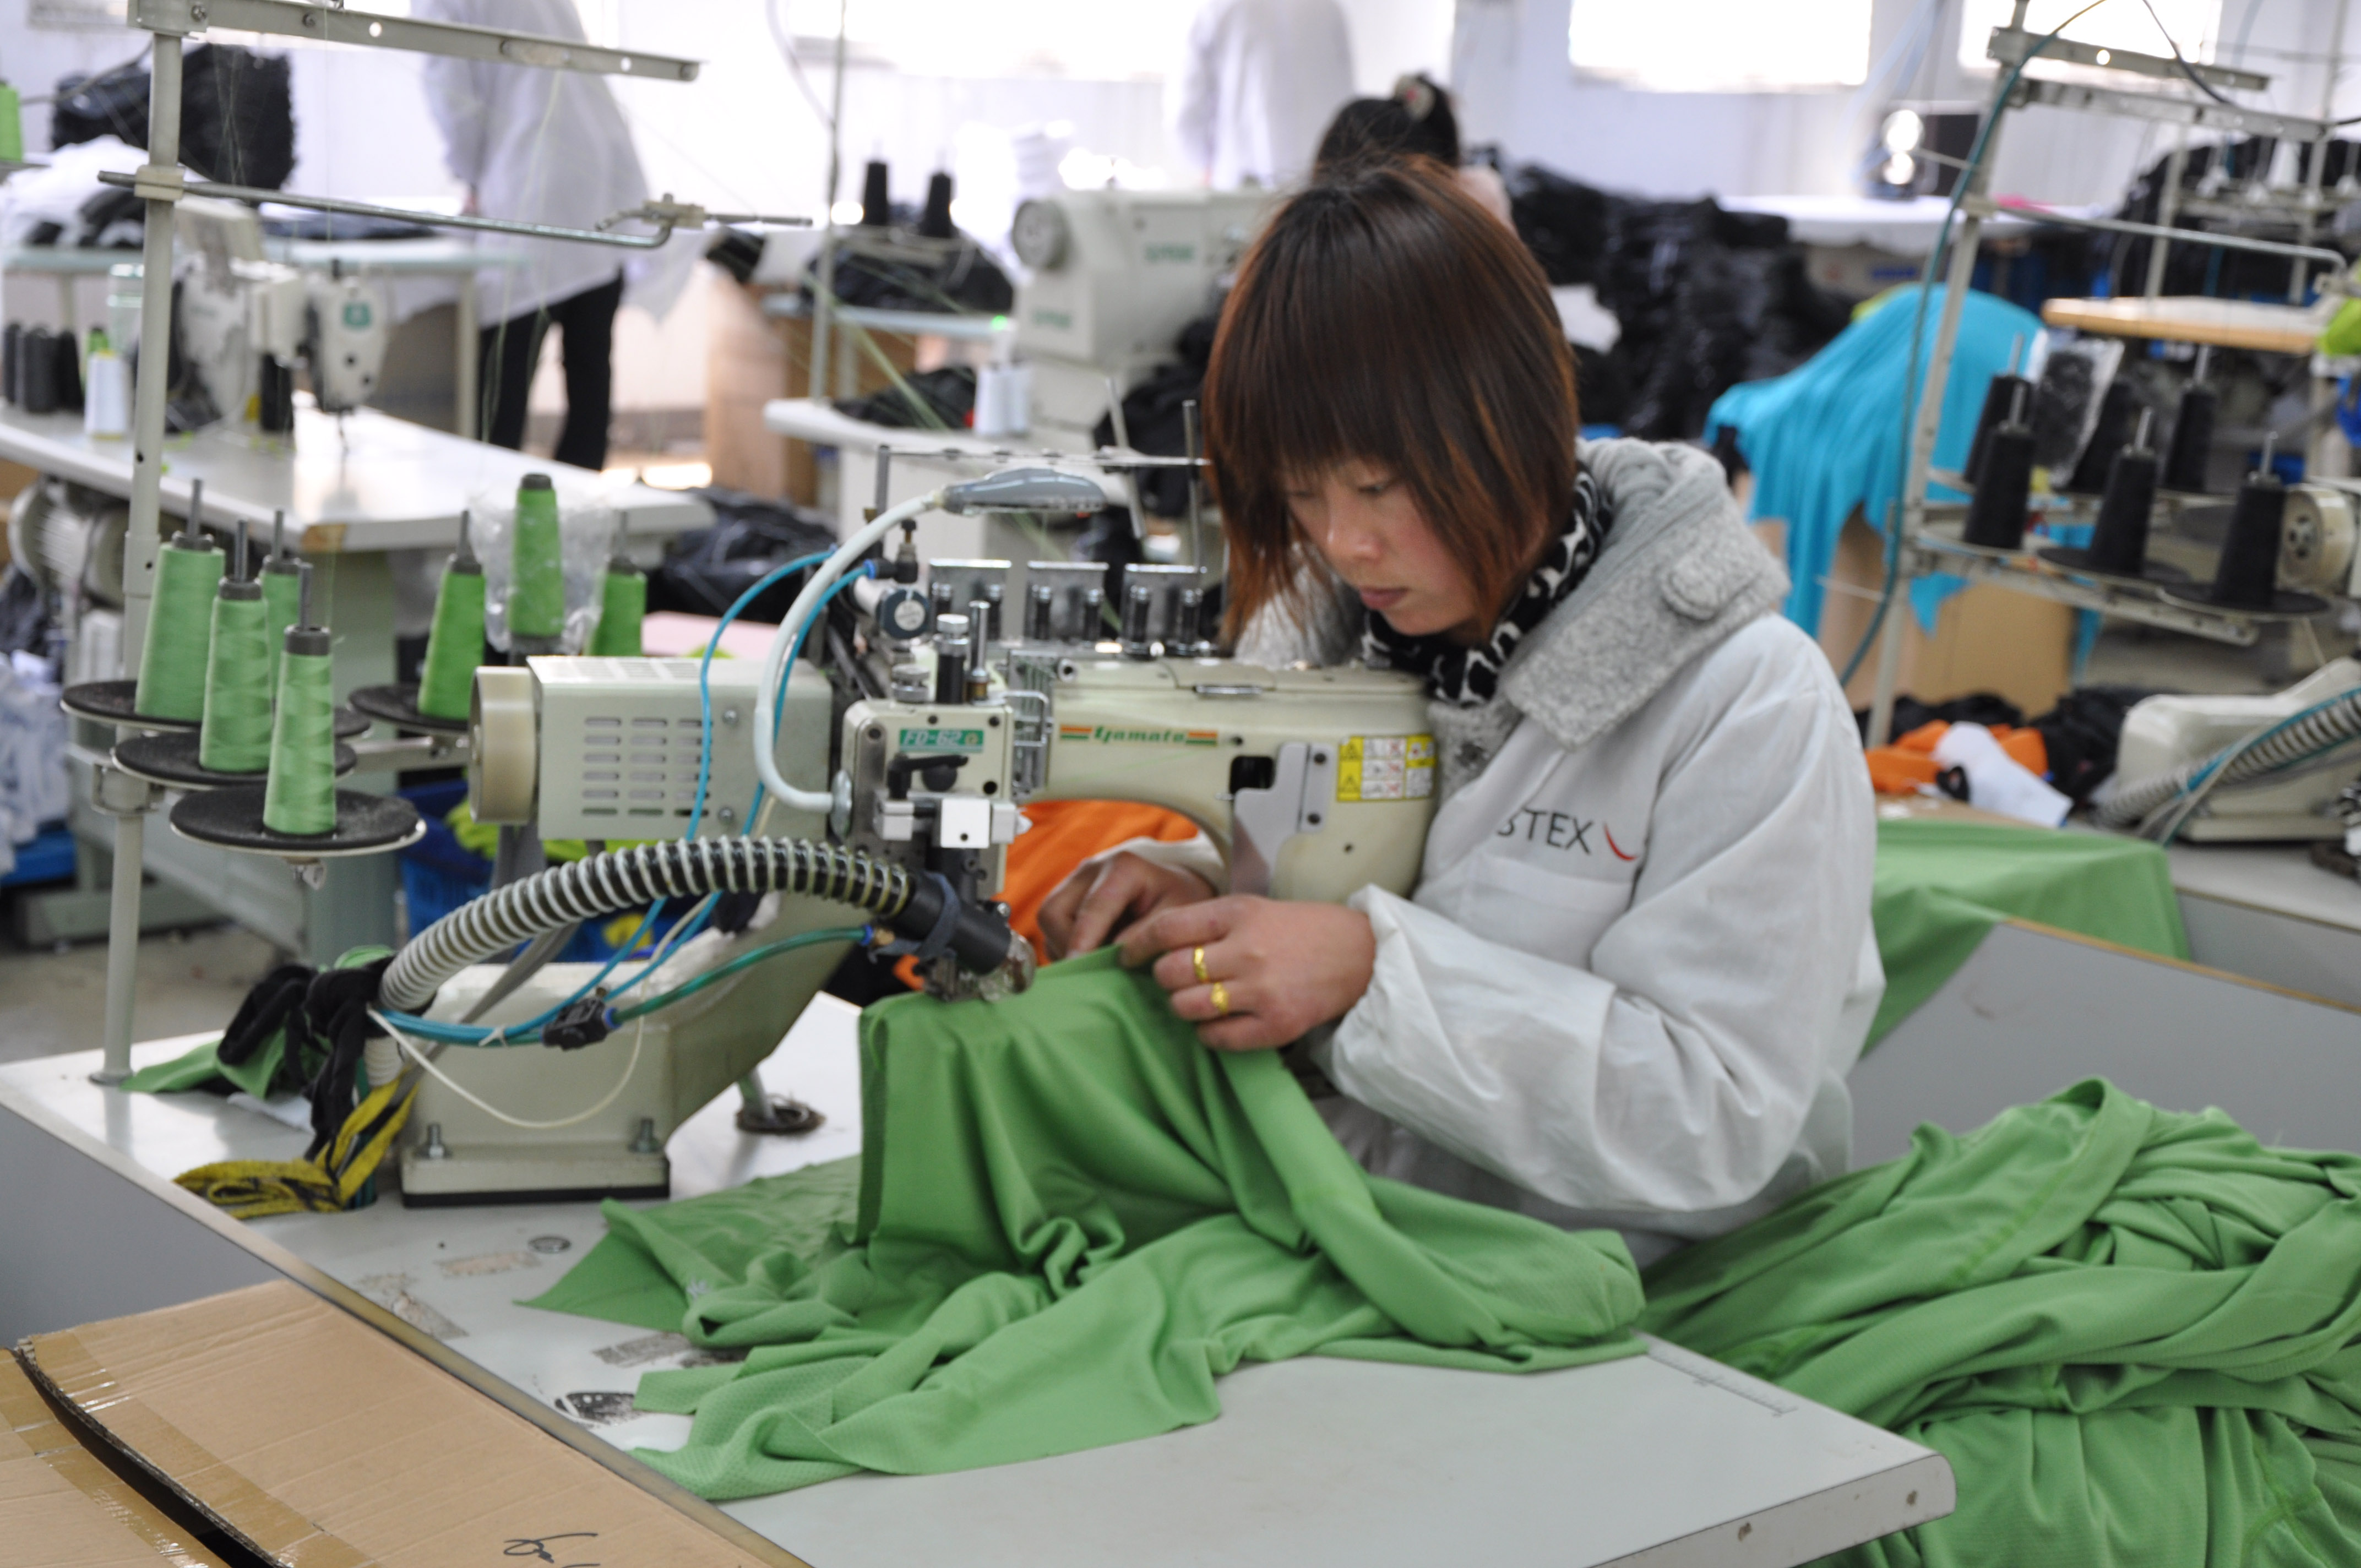 btexco-sewing-4